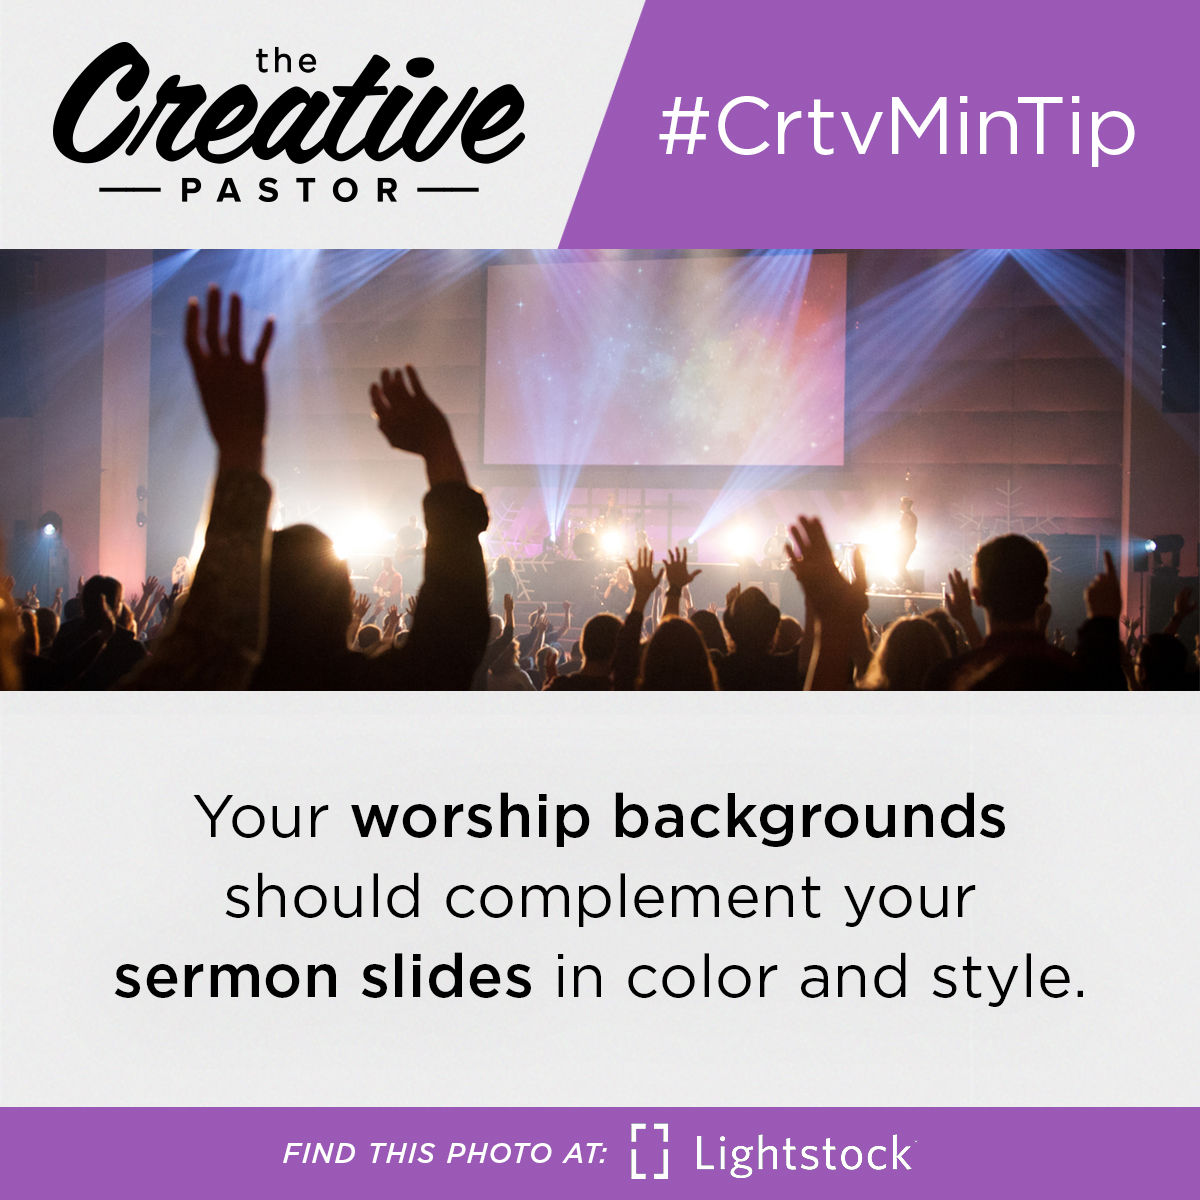 Your worship backgrounds should complement your sermon slides in color and style.